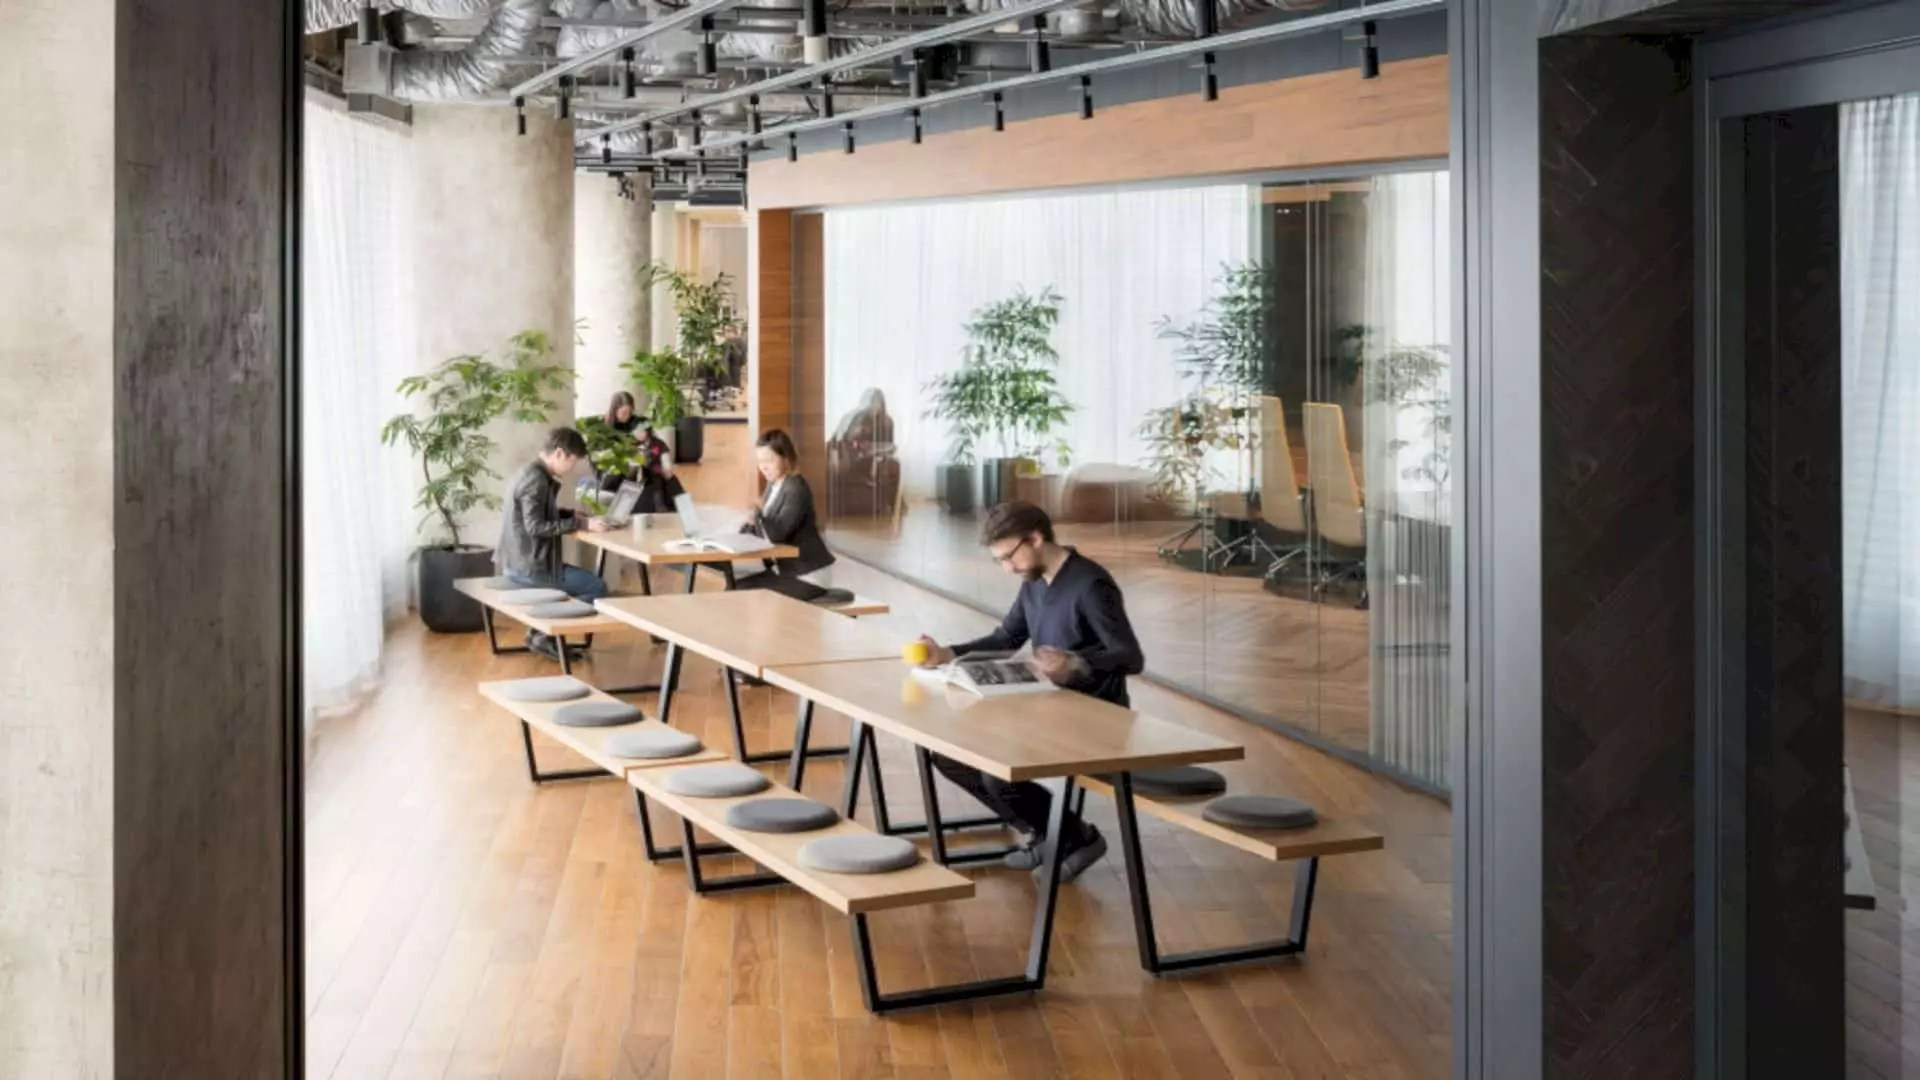 Accenture Innovation Hub Tokyo: State-of-Art Facility with Modern Interior and Japanese Design Elements